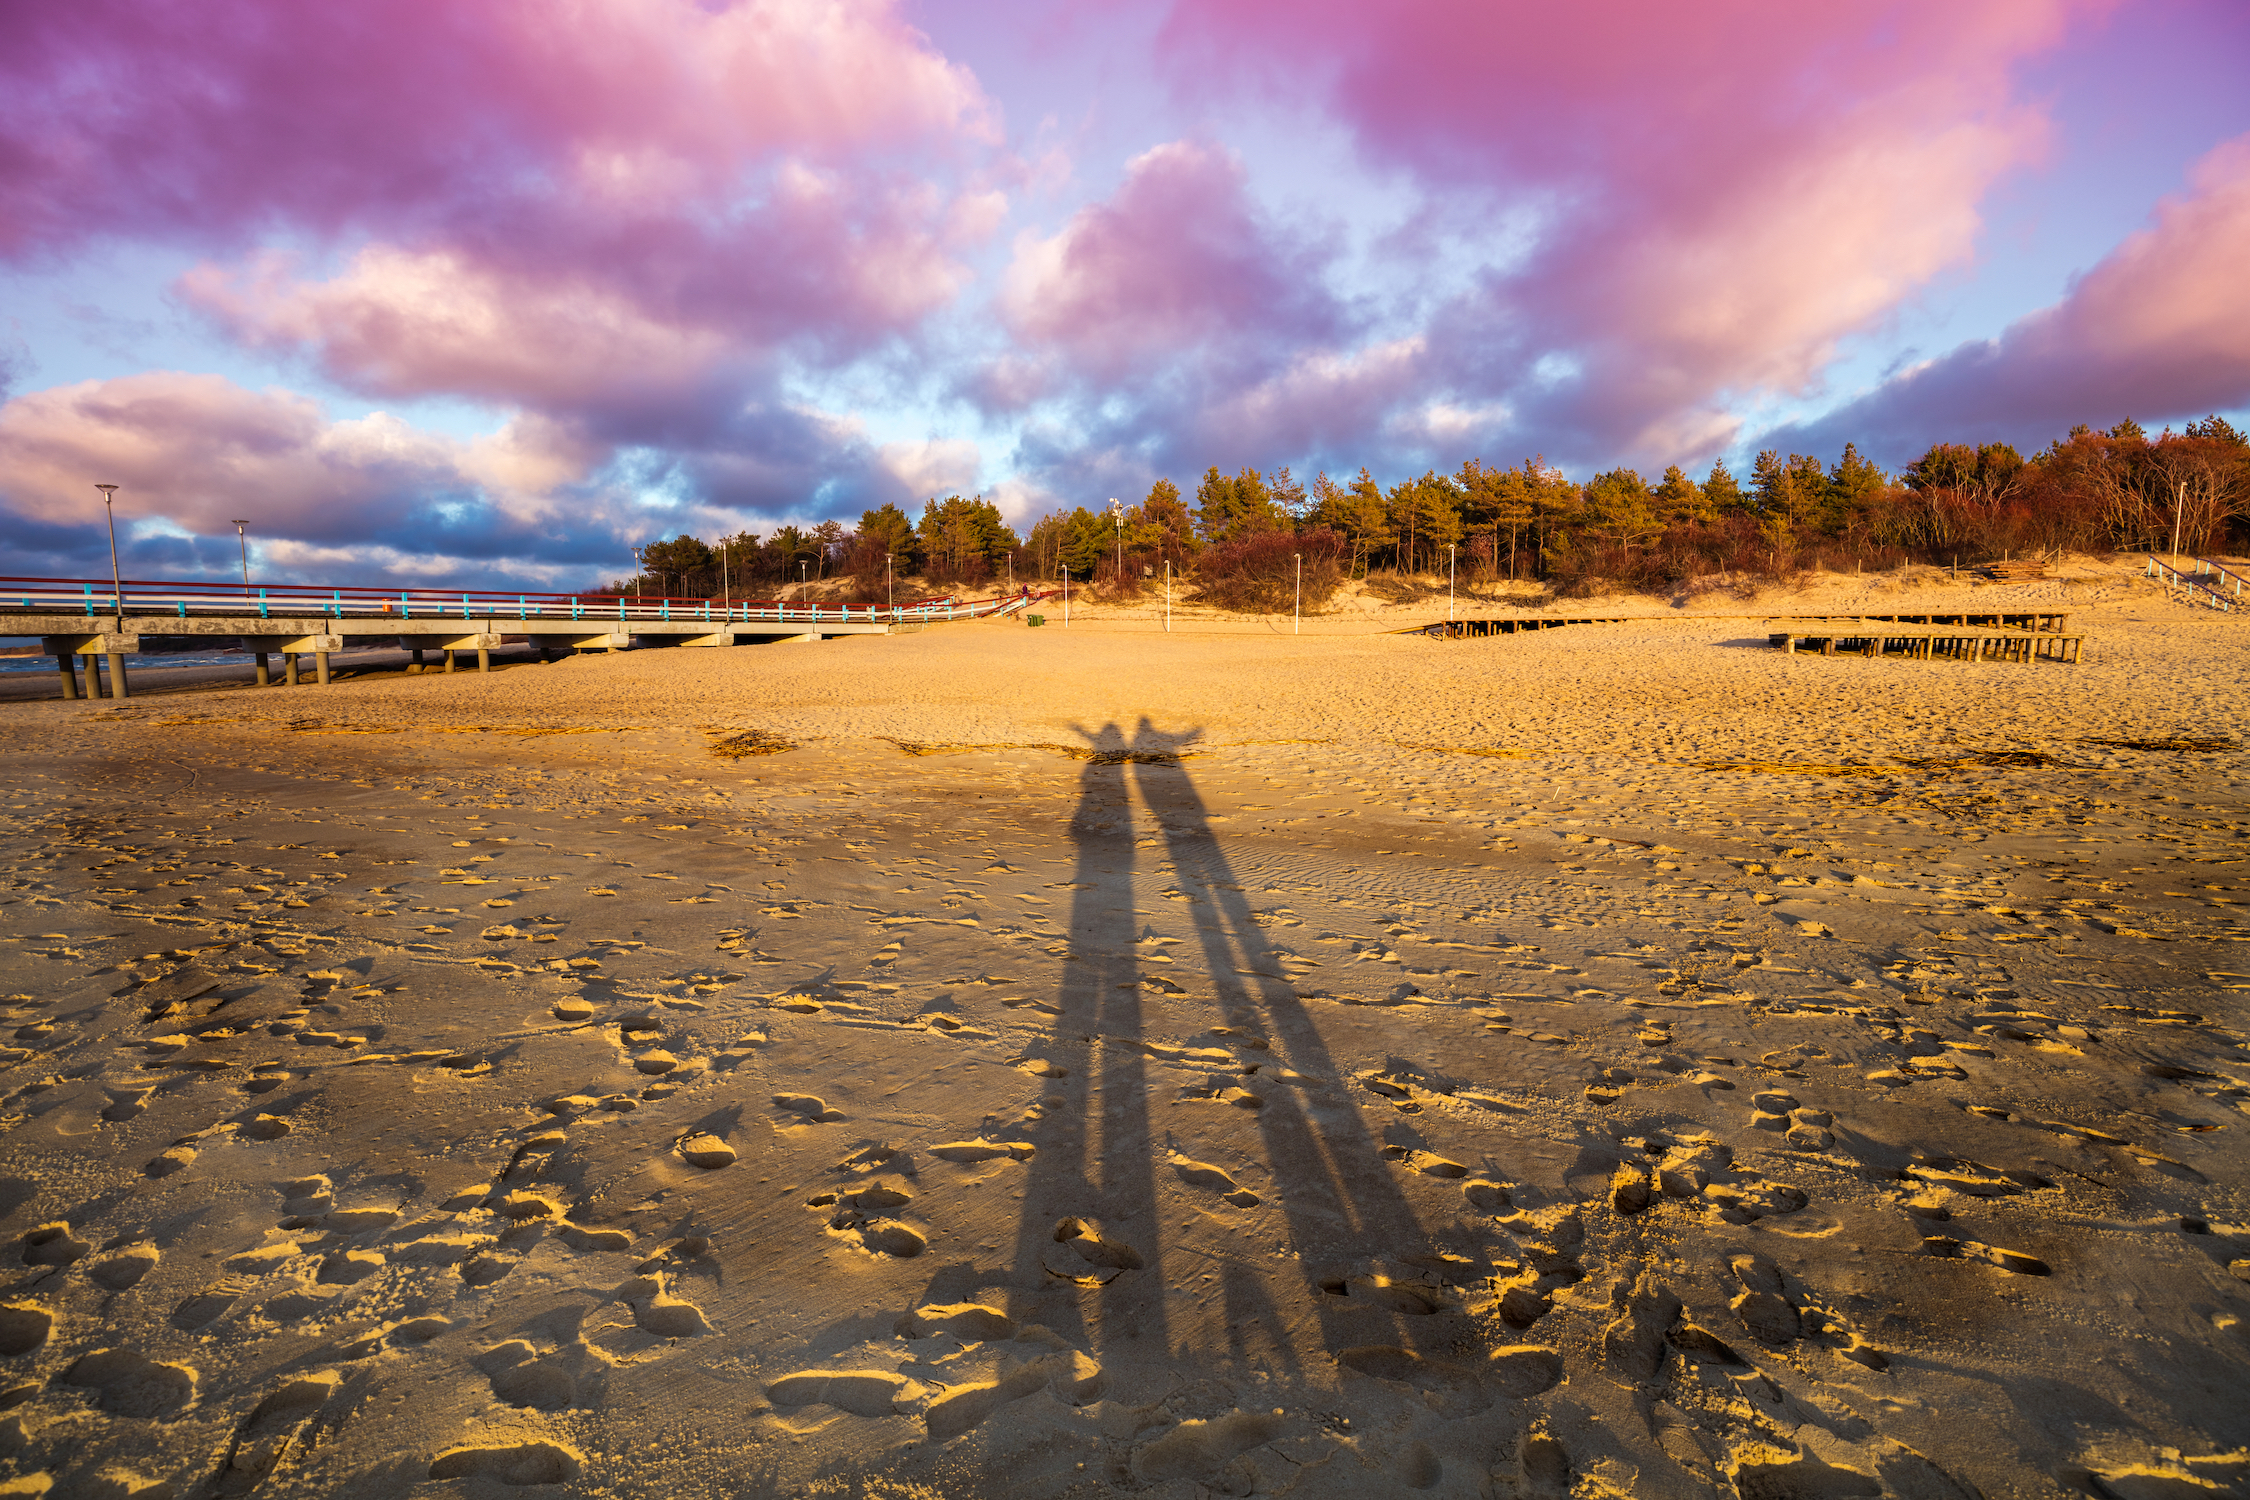 storyblocks-long-shadows-of-man-and-woman-on-the-beach-at-sunset_SRdNOWYyz.jpg